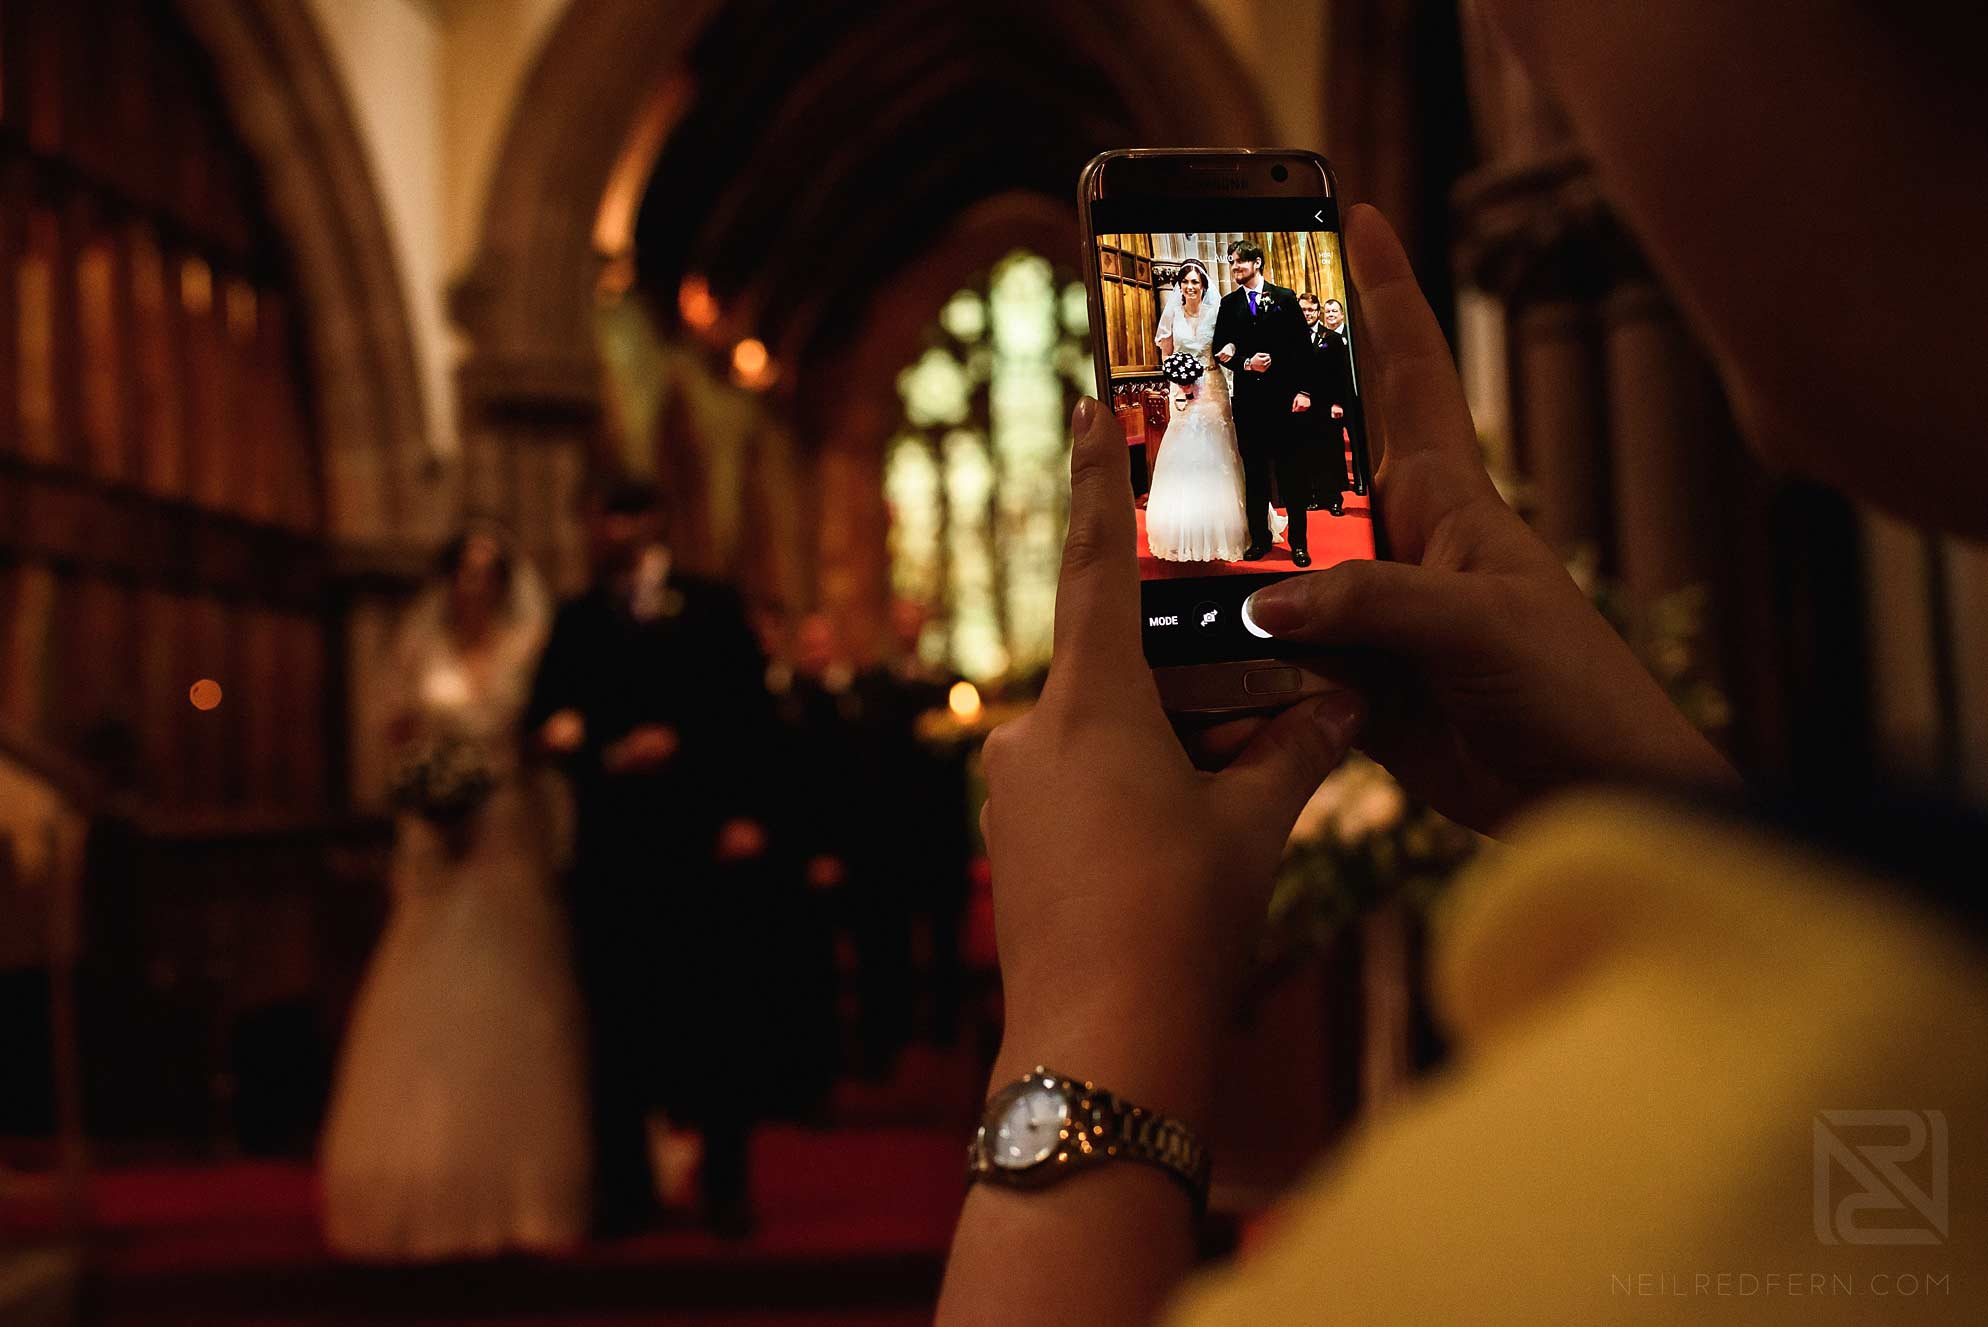 wedding guest taking photograph on phone